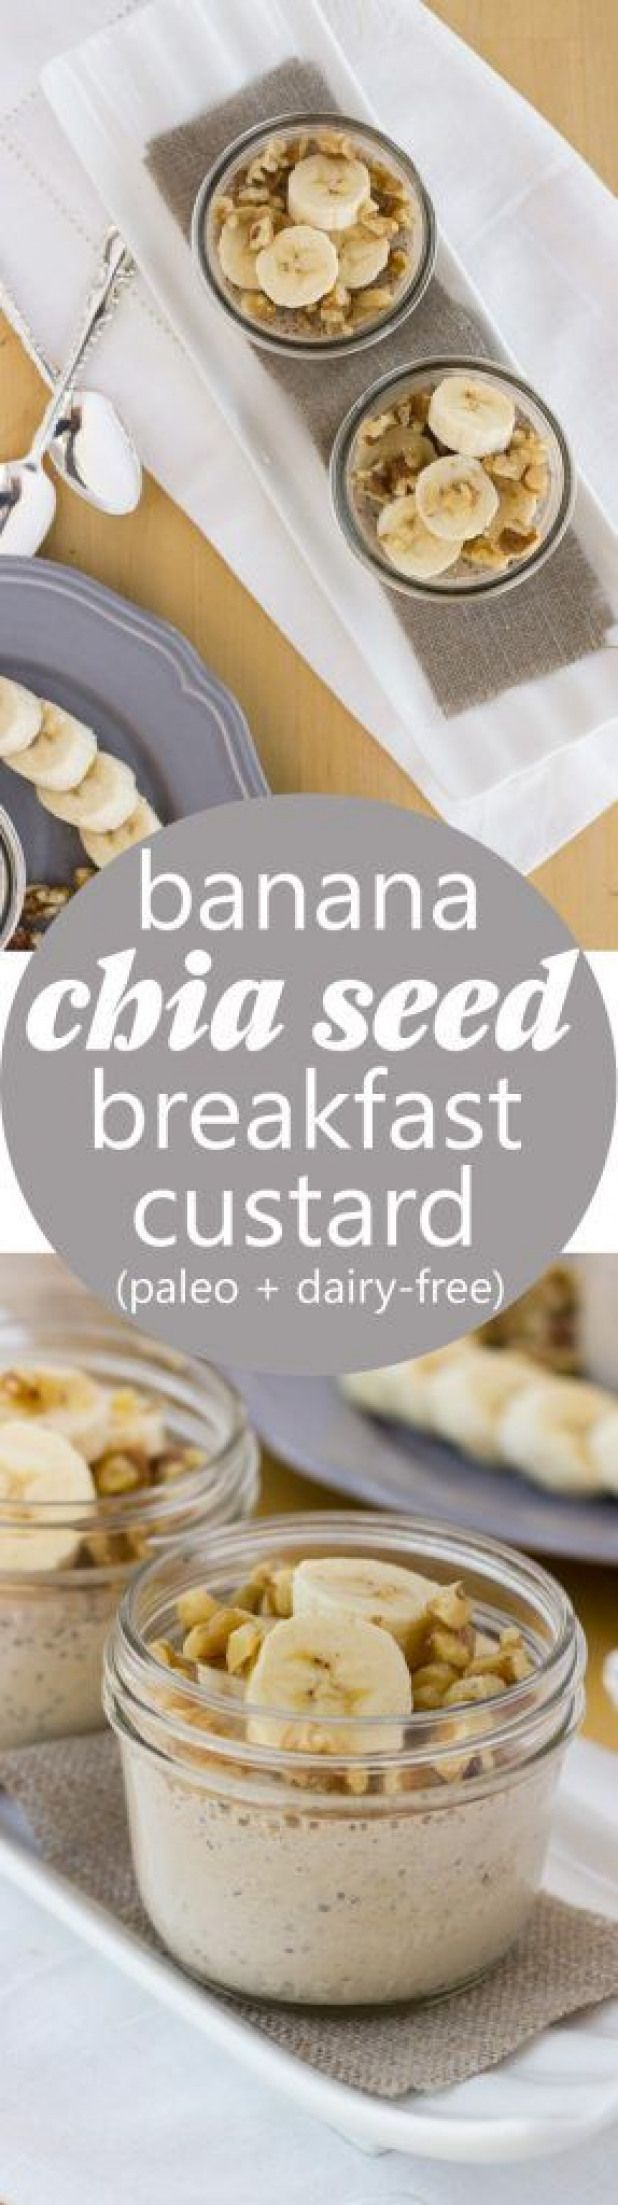 Banana Chia Seed Breakfast Custards Healthy creamy custards sweetened with bananas and dates that make a delicious breakfast snack or dessert DairyFree Paleo